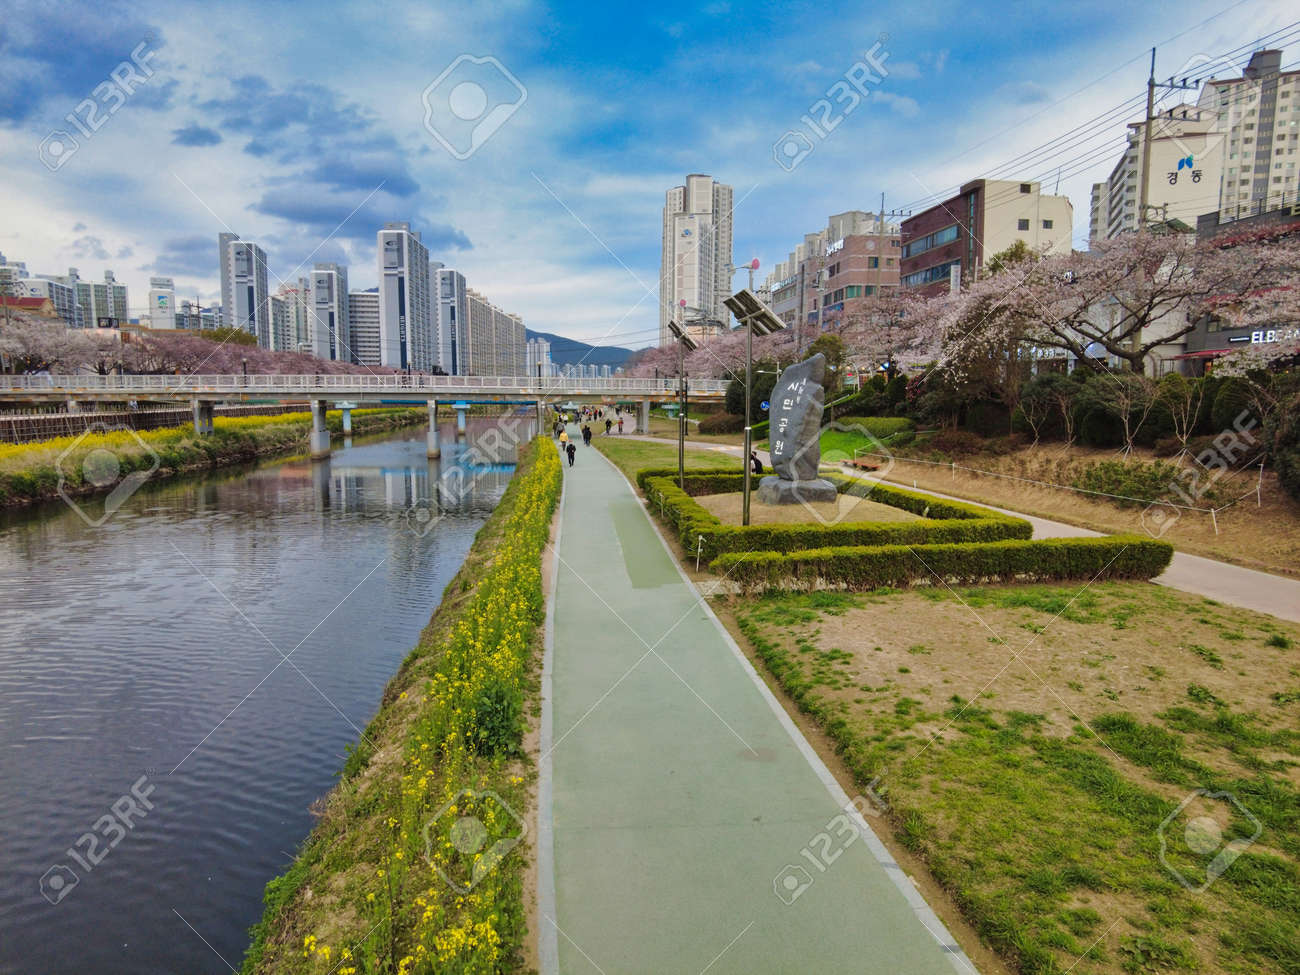 Cherry blossom Blooming in Oncheoncheon Stream, Busan, South Korea, Asia. - 167337656